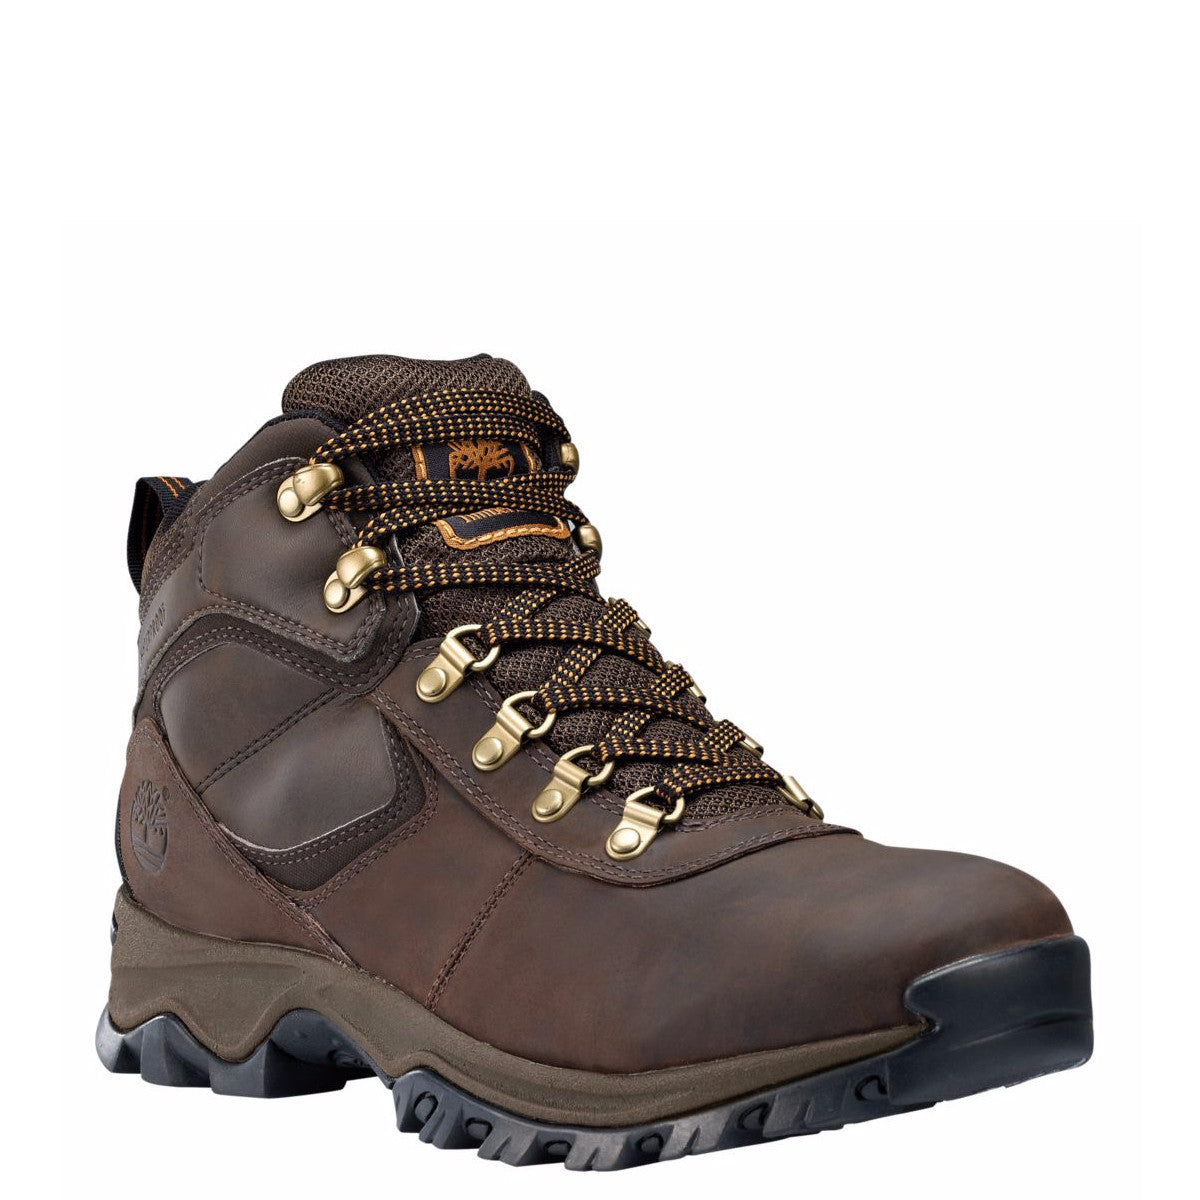 aeffe1f872f Timberland Pro Men s Mt. Maddsen Mid Waterproof Hiking Boots - Dark ...